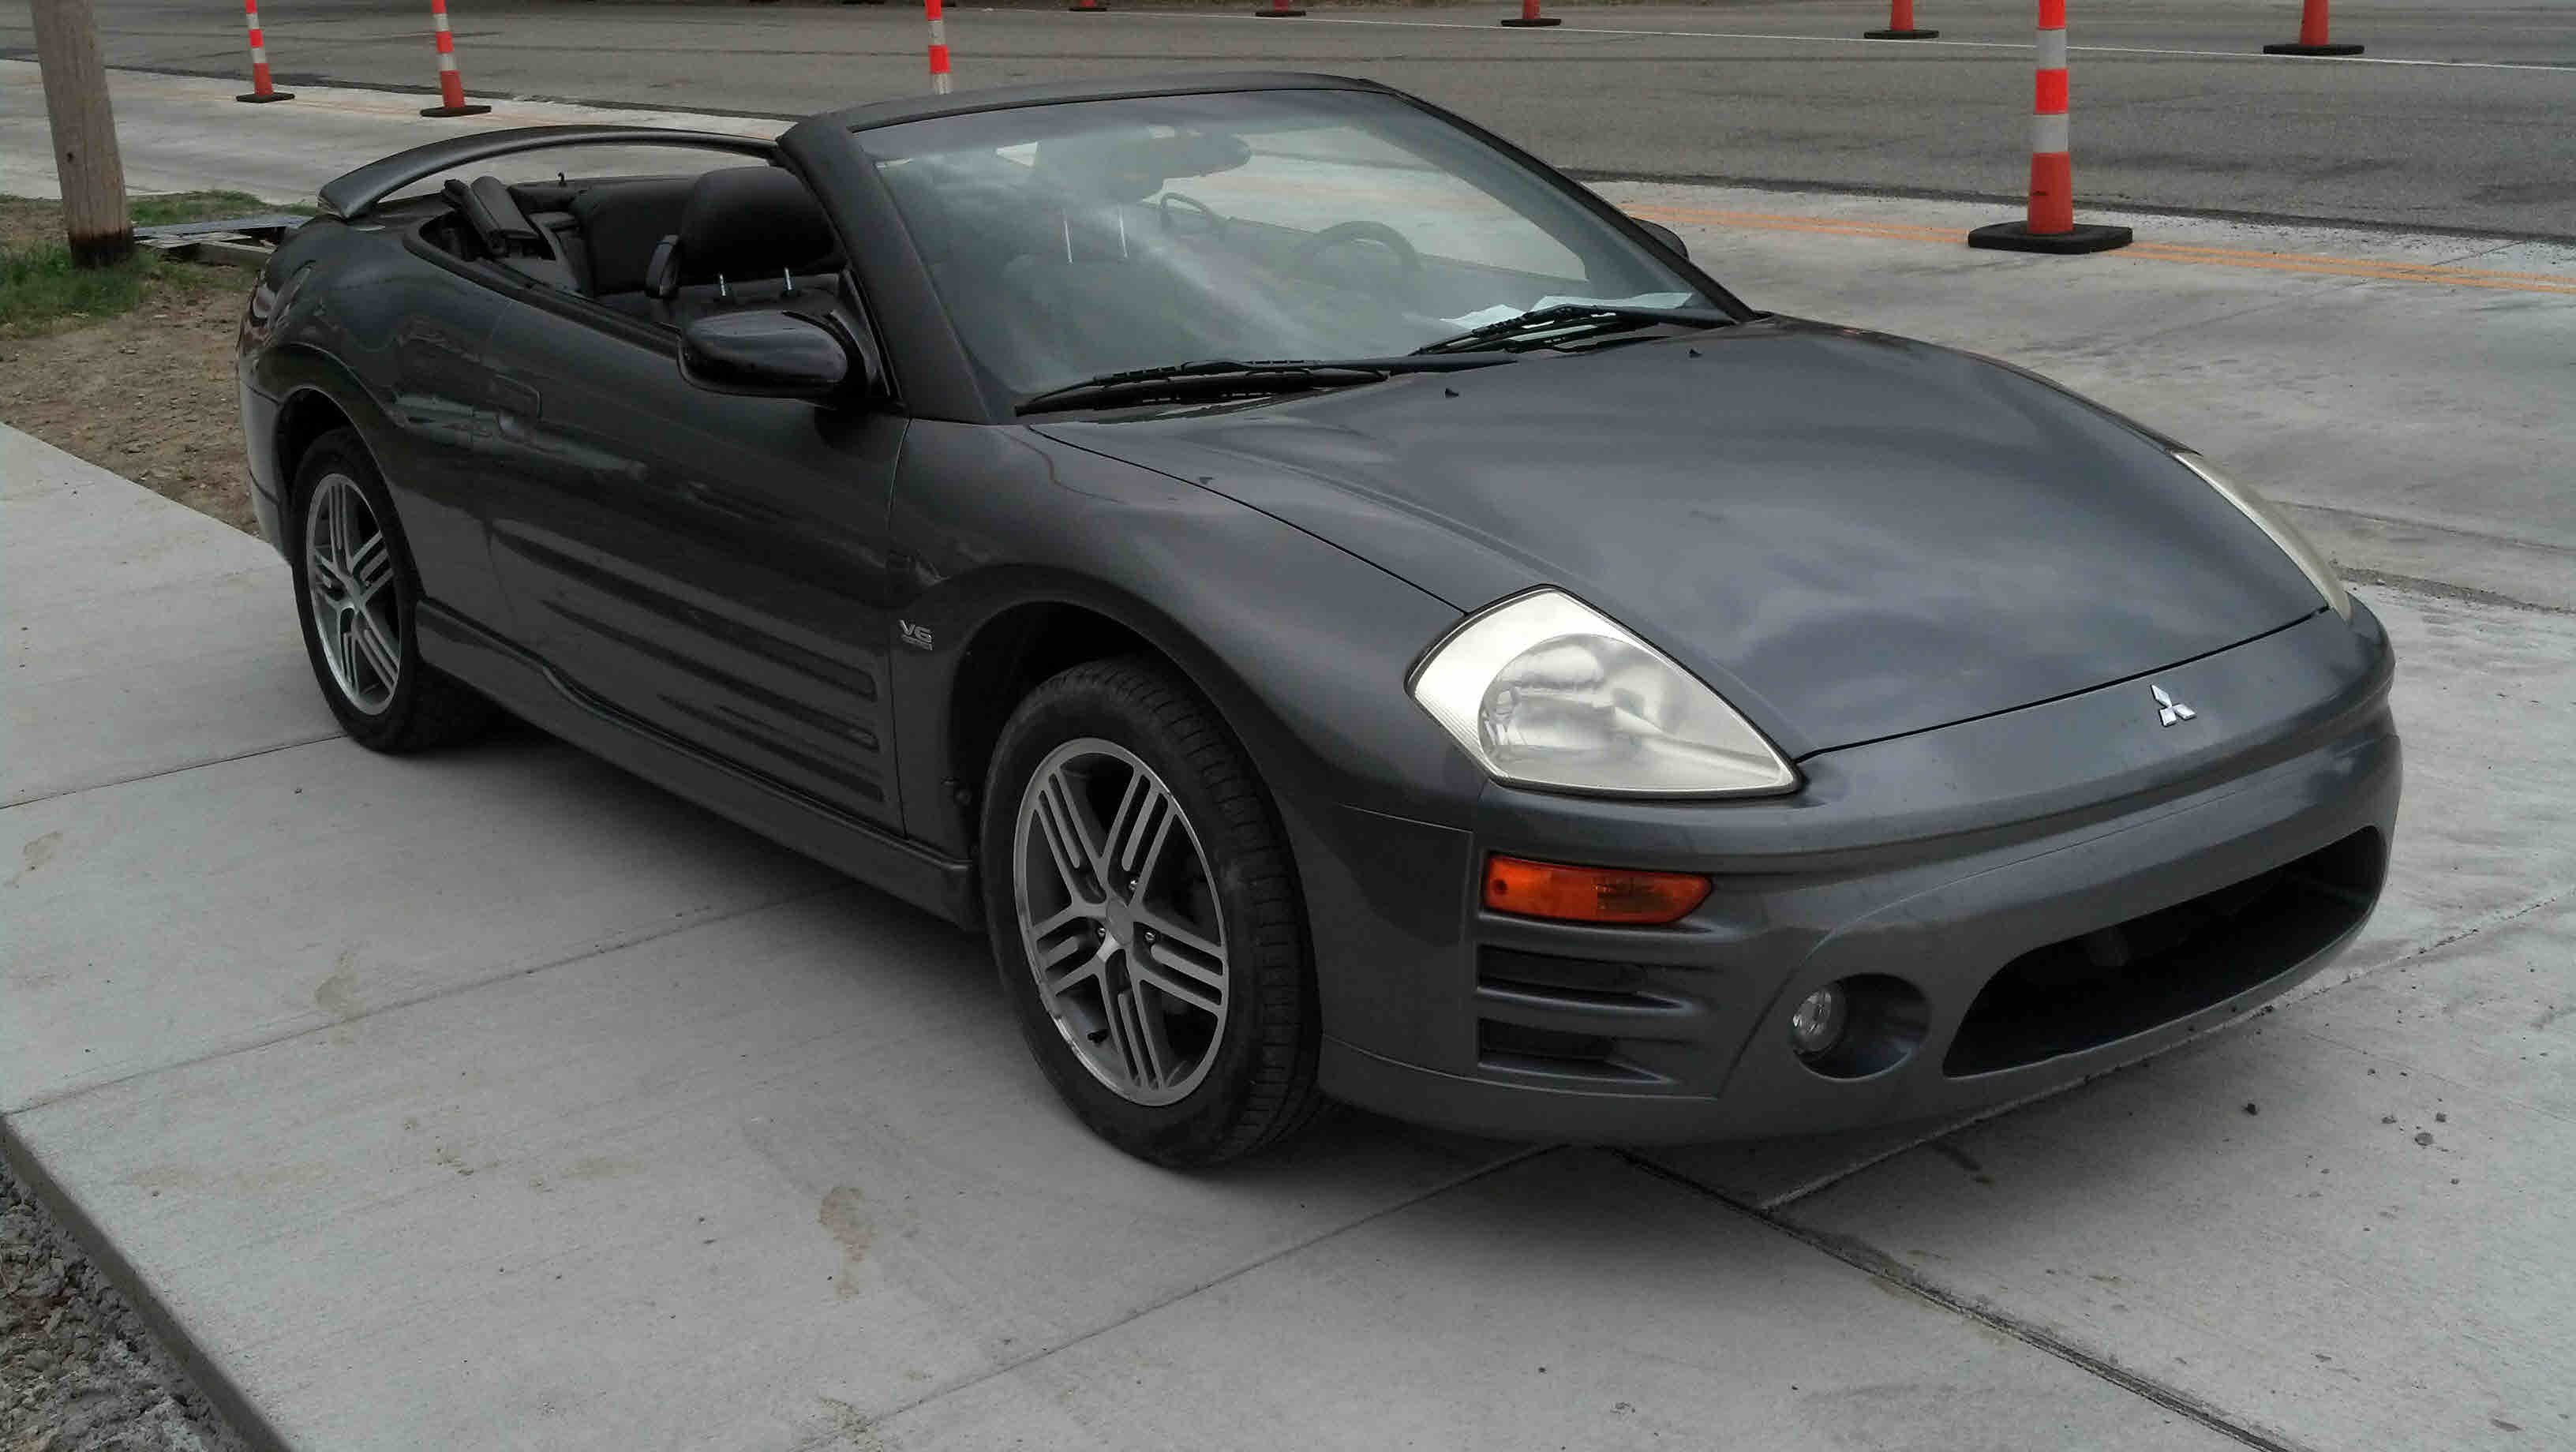 Silver, dark grey leather interior, V-6 3.0 liter, 5 speed ...